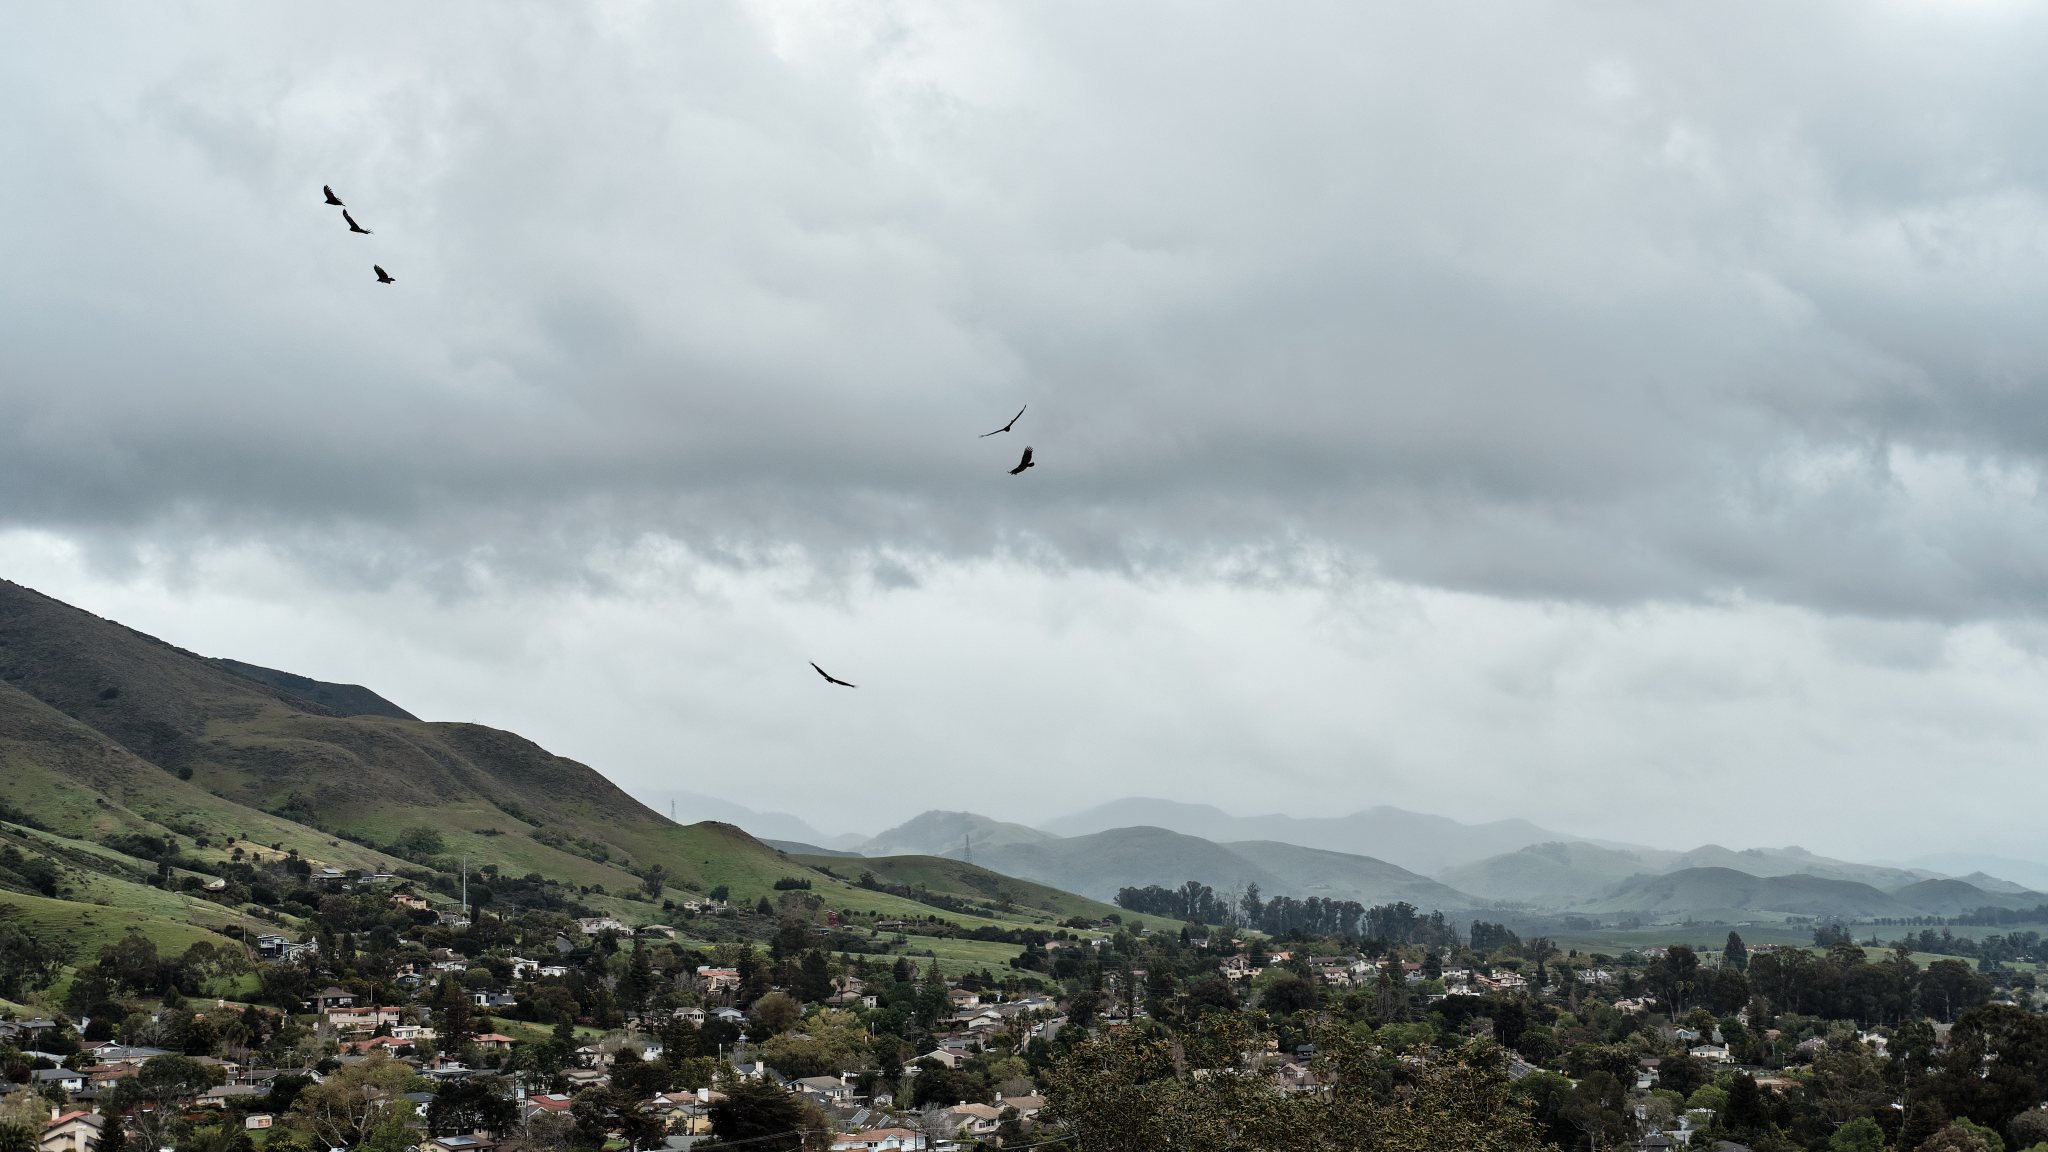 Photo of a San Luis Obispo, California  residential area and hills with 5 turkey vultures flying in the cloudy sky.